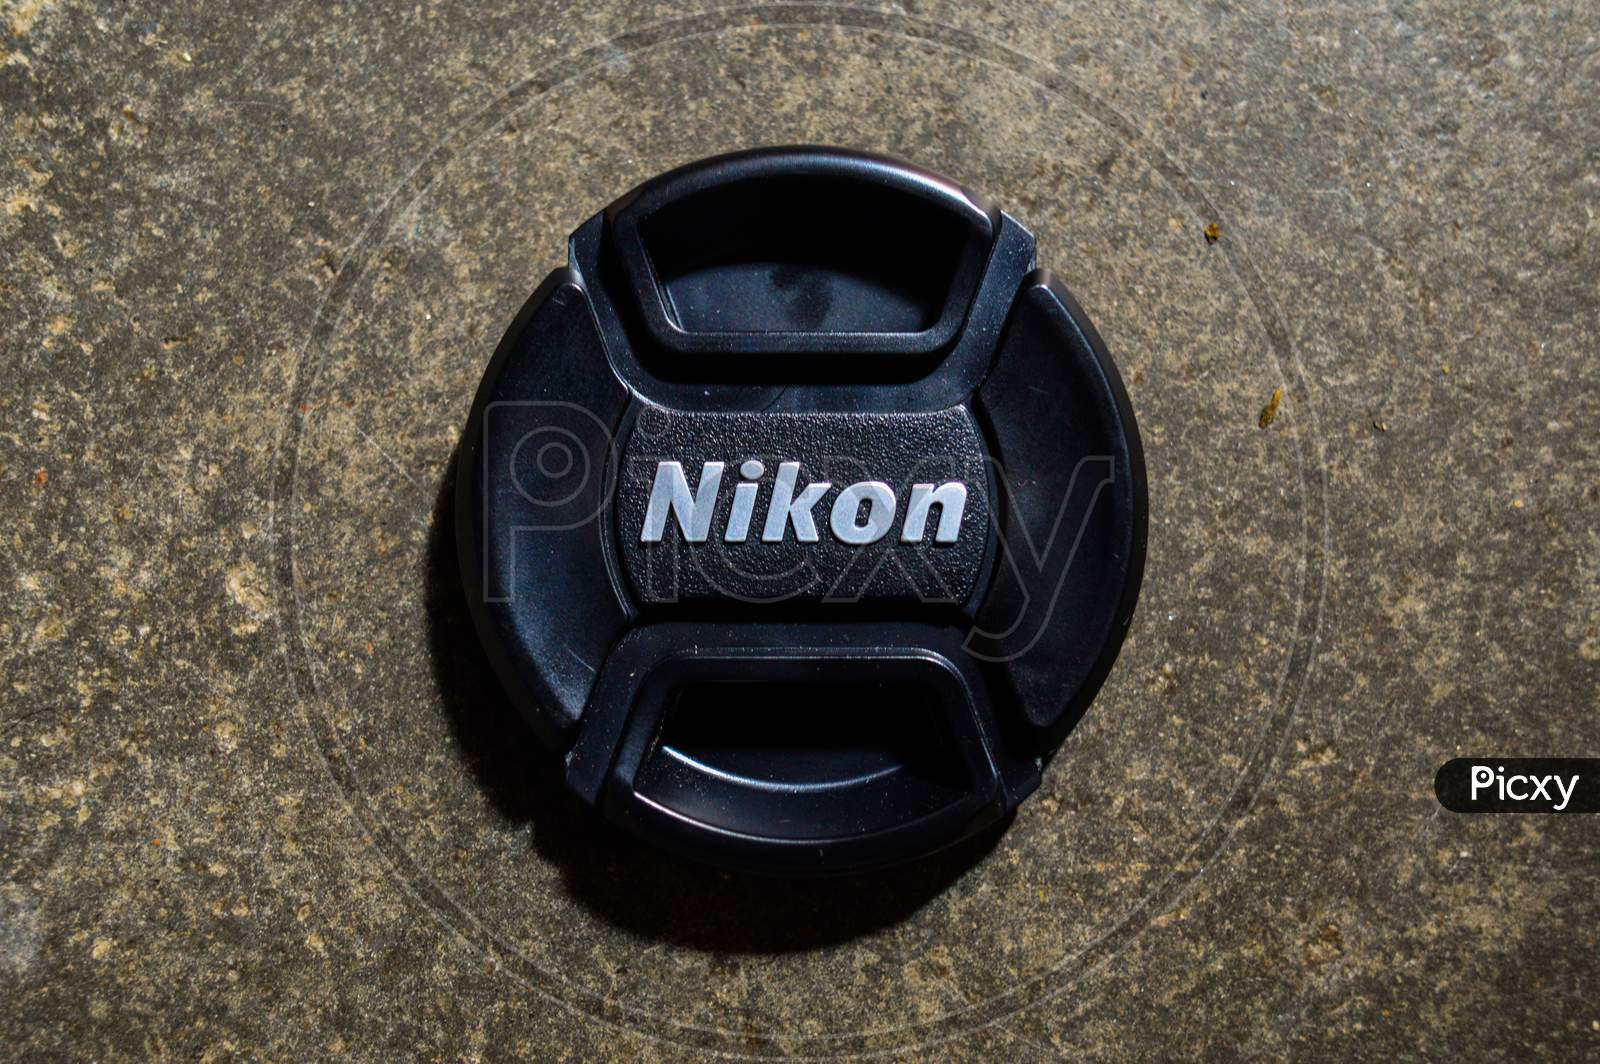 A Lens Cap Of Nikon Camera Lens Isolated On Texture Cemented Floor.